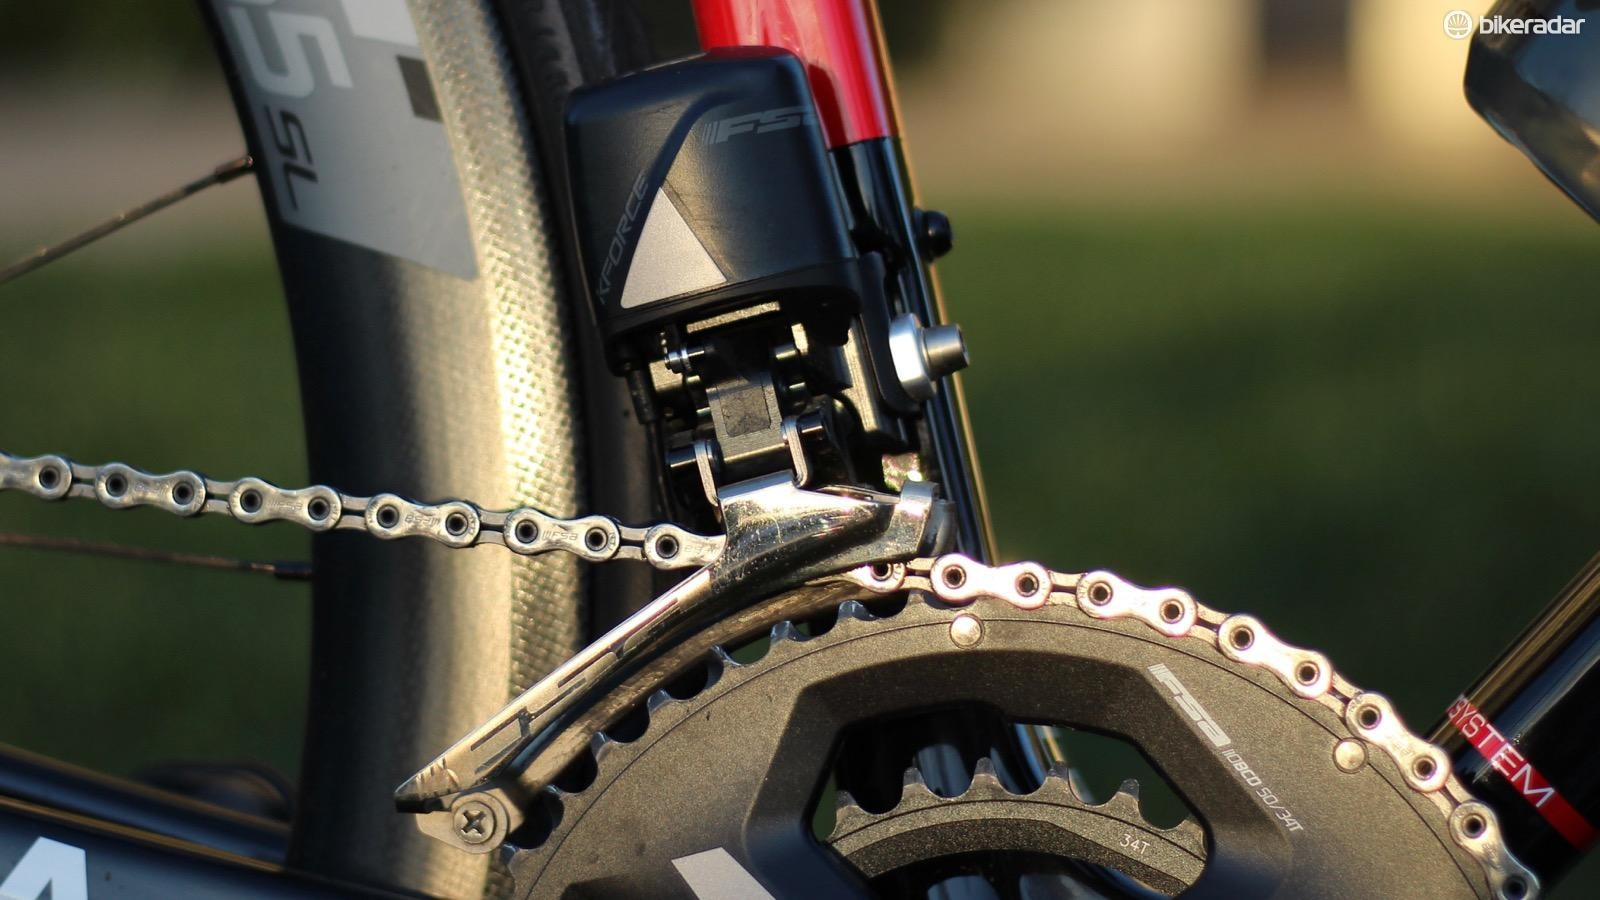 The front derailleur shifts with crisp power and certainty, like a bouncer at a high-end nightclub removing a drunk